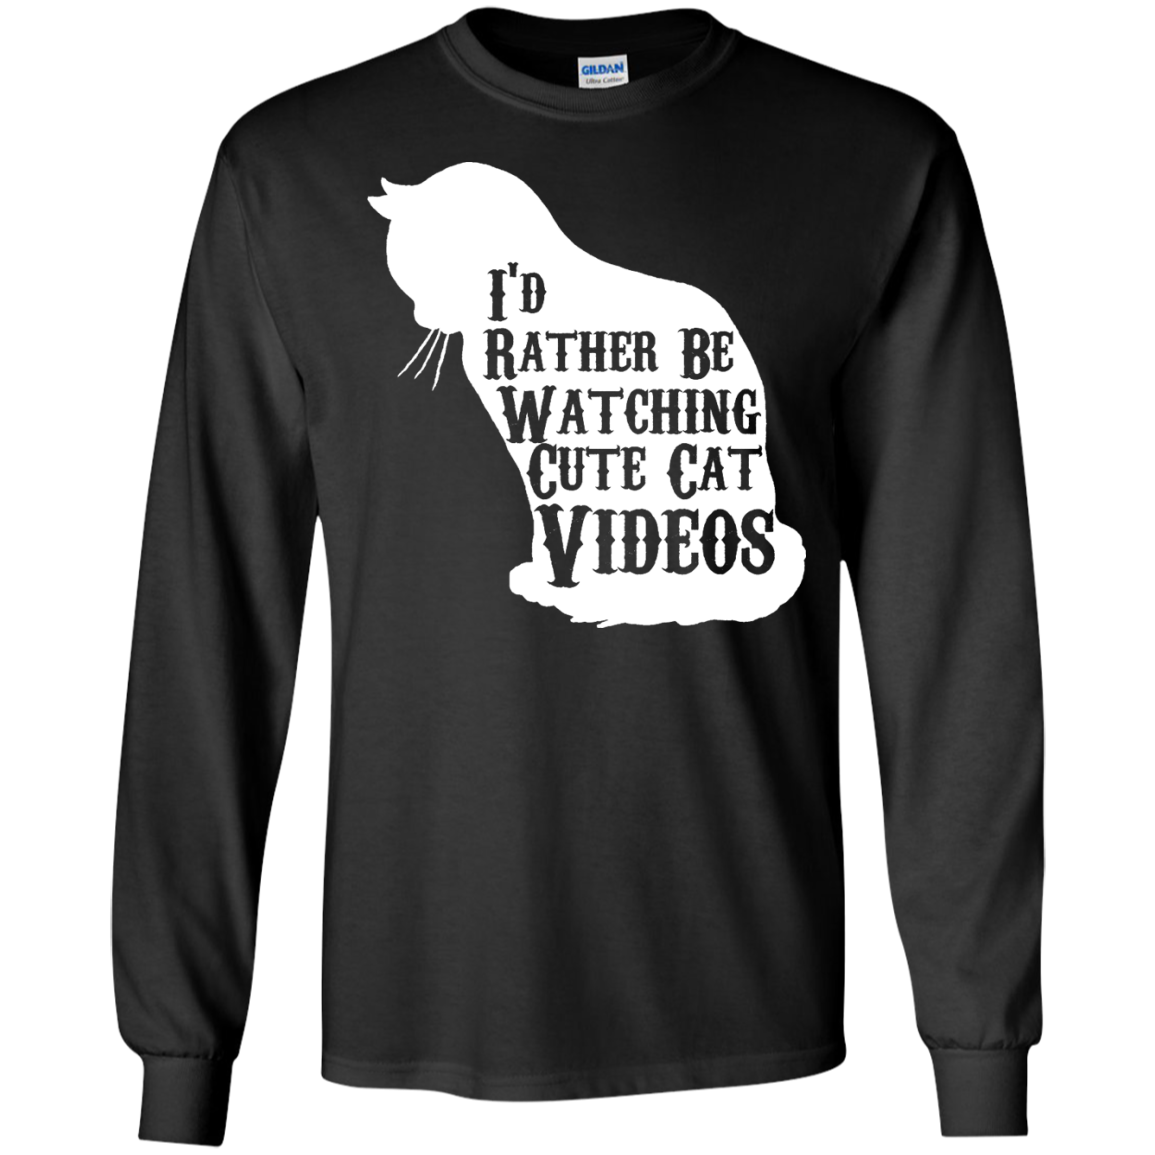 I'd rather be watching cute cat videos LS Ultra Cotton Tshirt